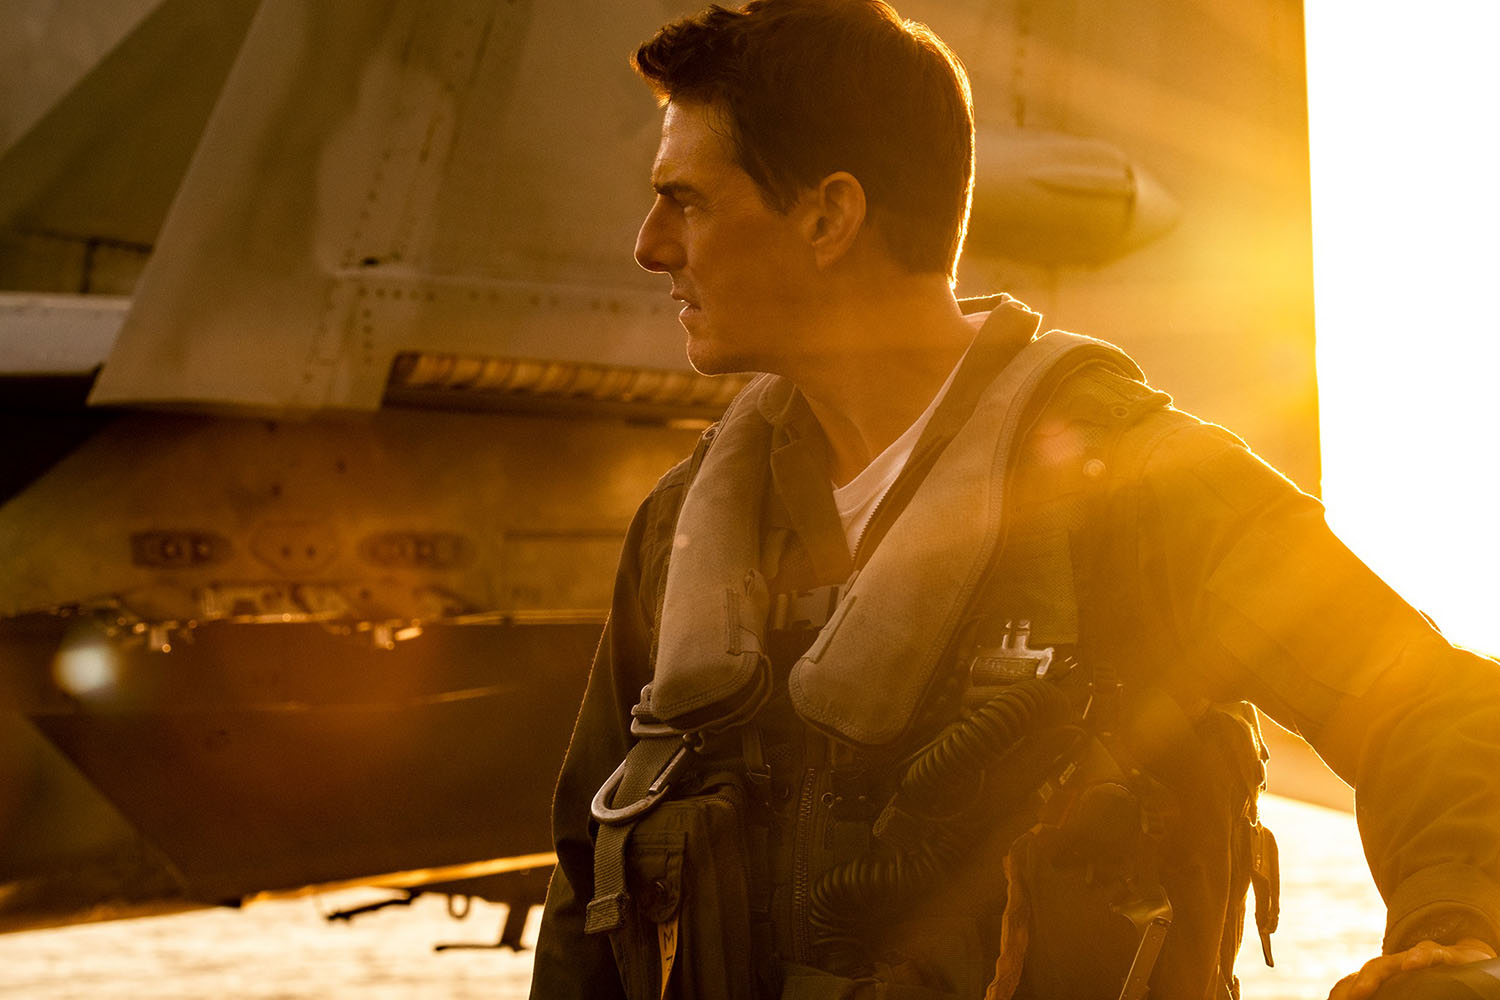 Tom Cruise Tells US Navy He Wants To Fly F/A-18: Here's What The Brass Said